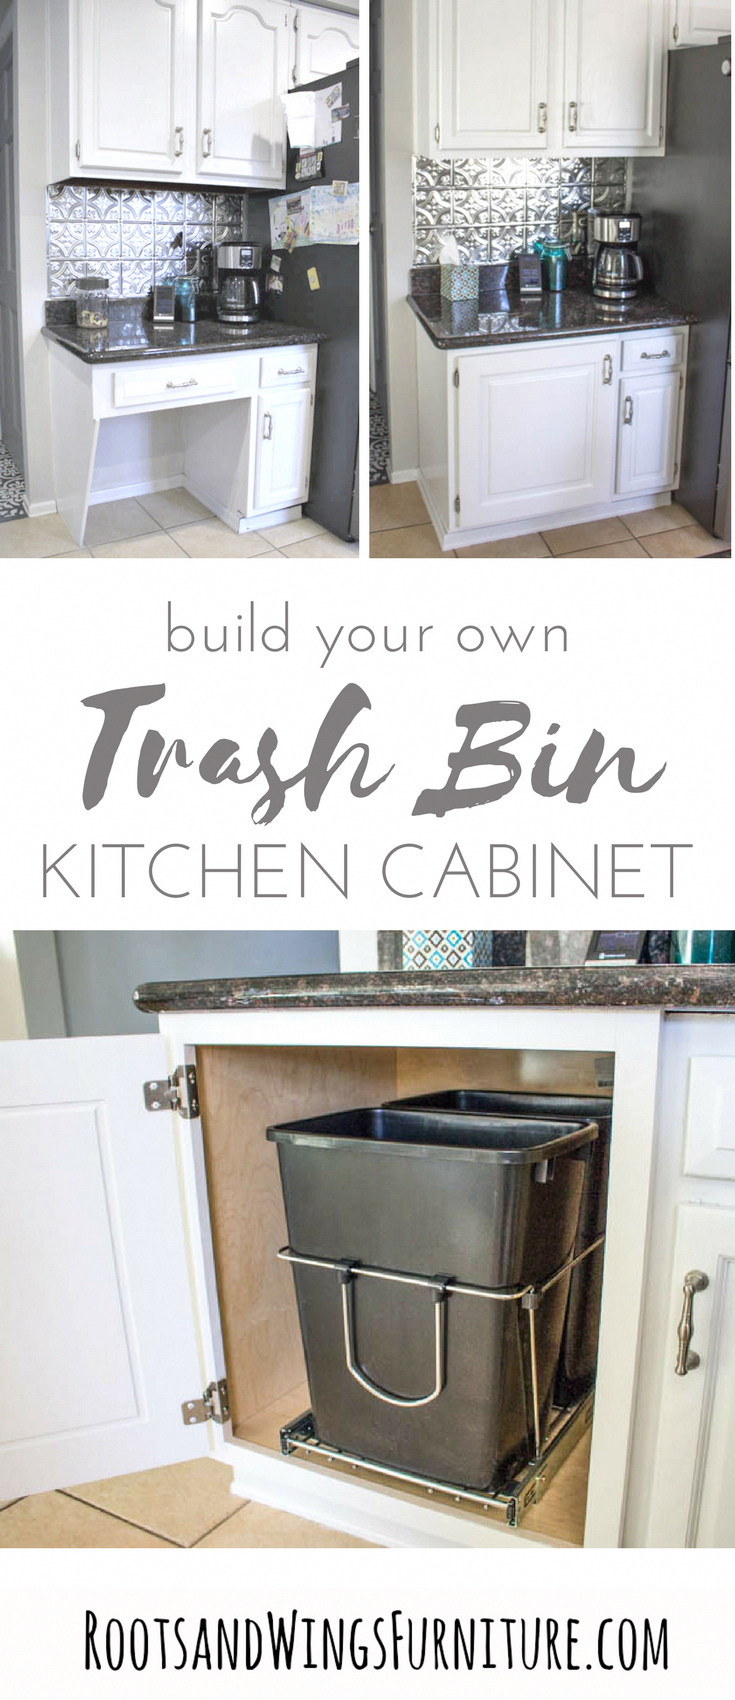 Take That Un Used Kitchen Desk Space And Turn Into Something Functional Add A Custom Base Cabinet With A Pul Diy Kitchen Kitchen Desks Diy Kitchen Renovation